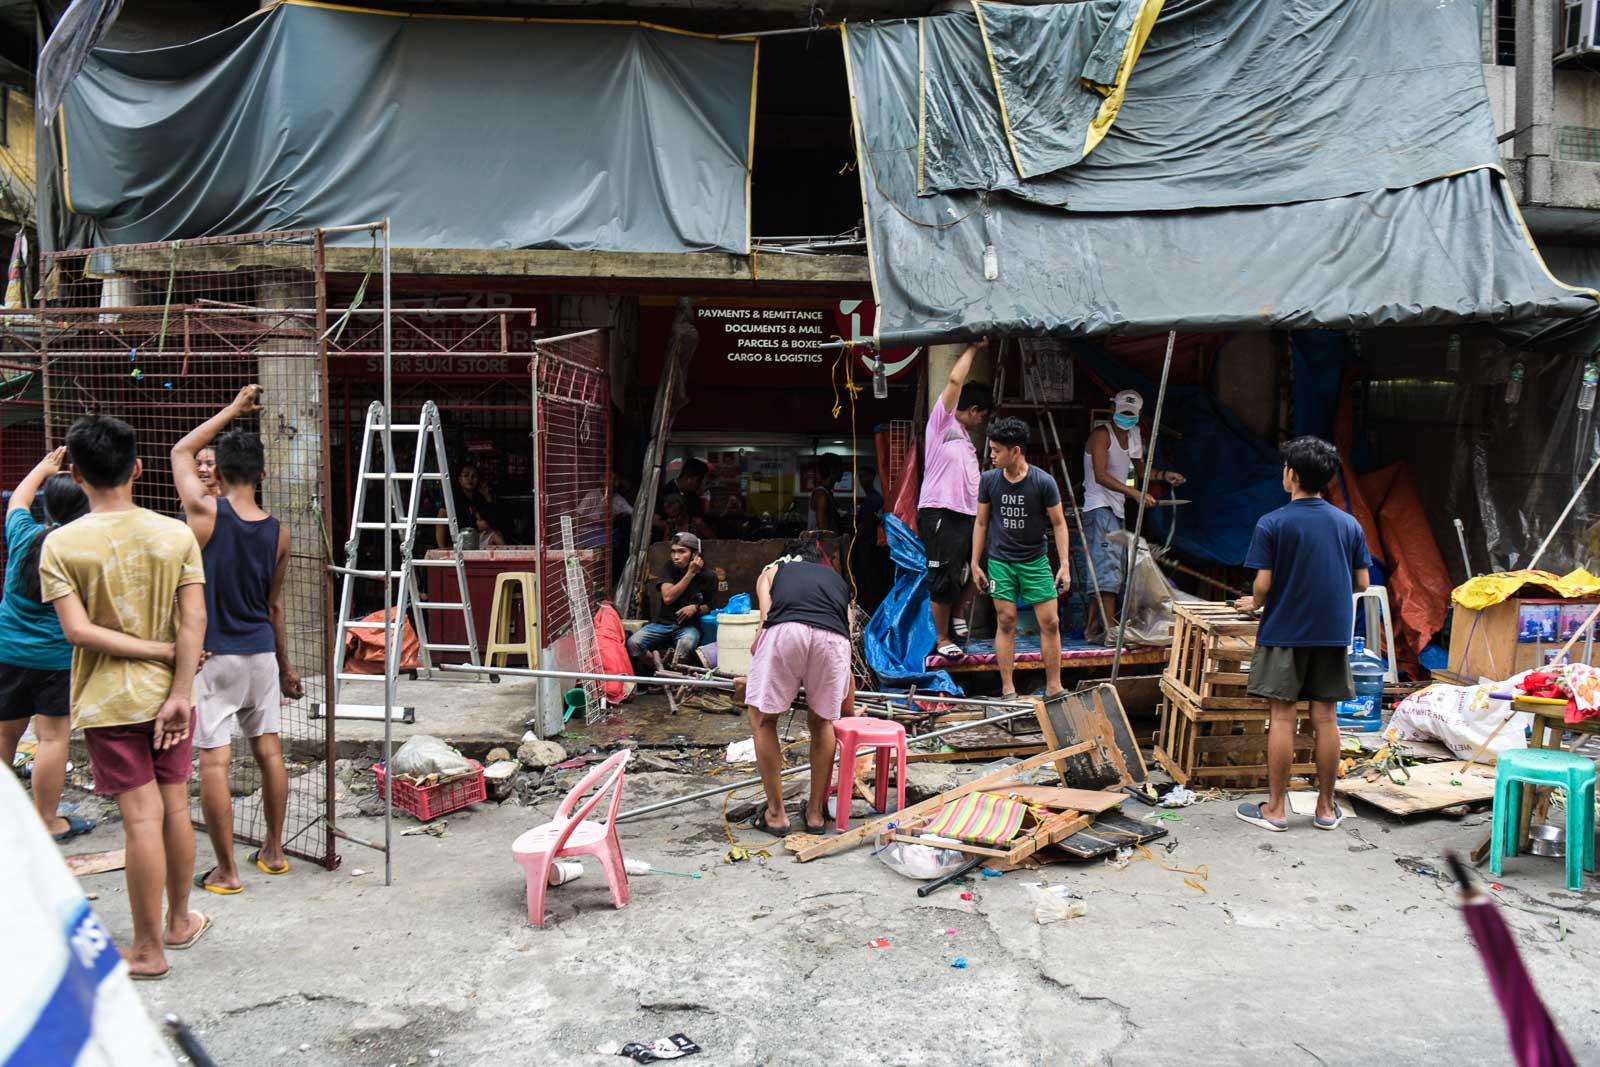 DISMANTLED. Vendors rush to take down their stalls in Divisoria. Photo by LeAnne Jazul/Rappler